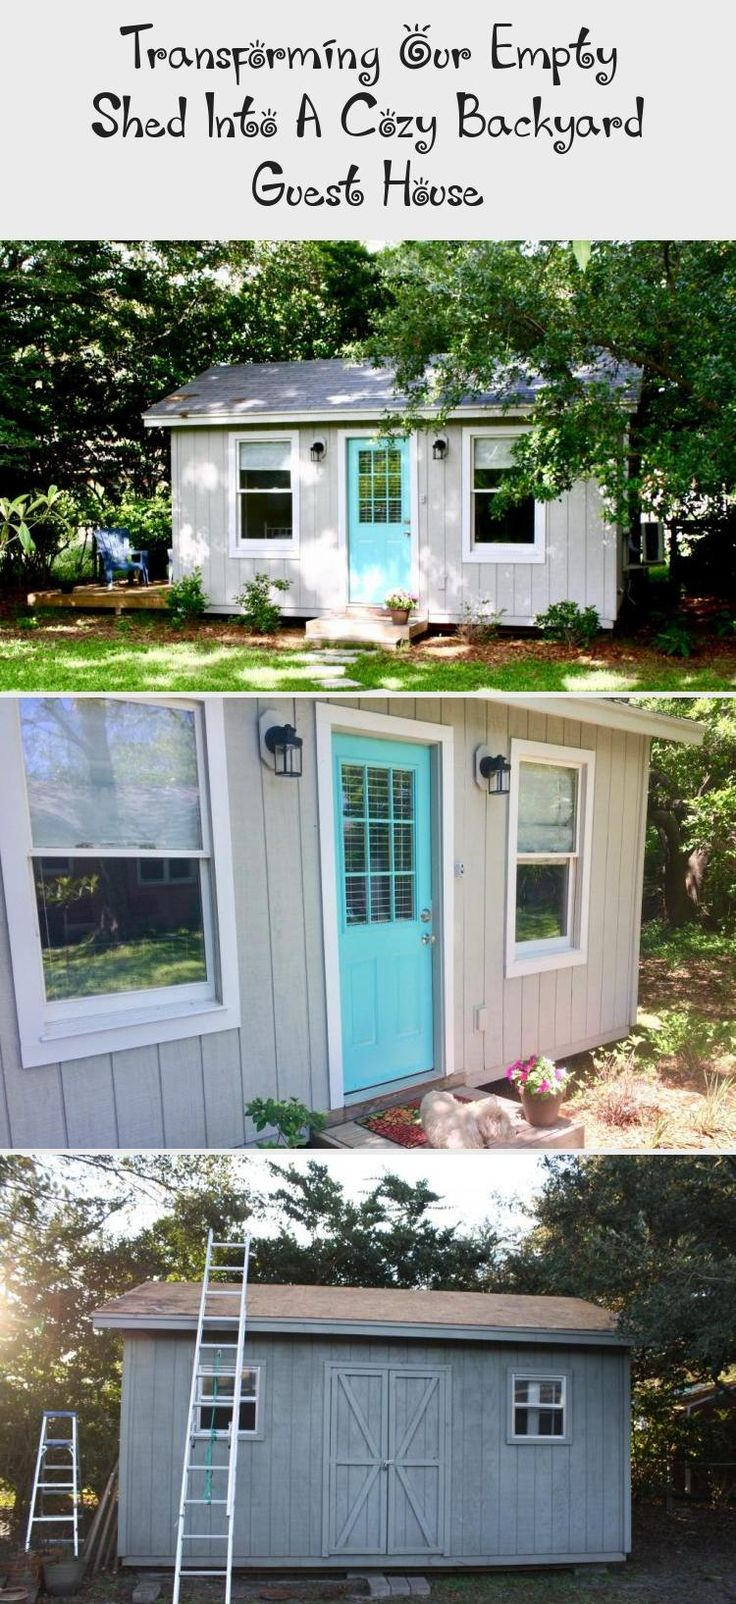 Transforming our Empty Shed into a Cozy Backyard Guest ...